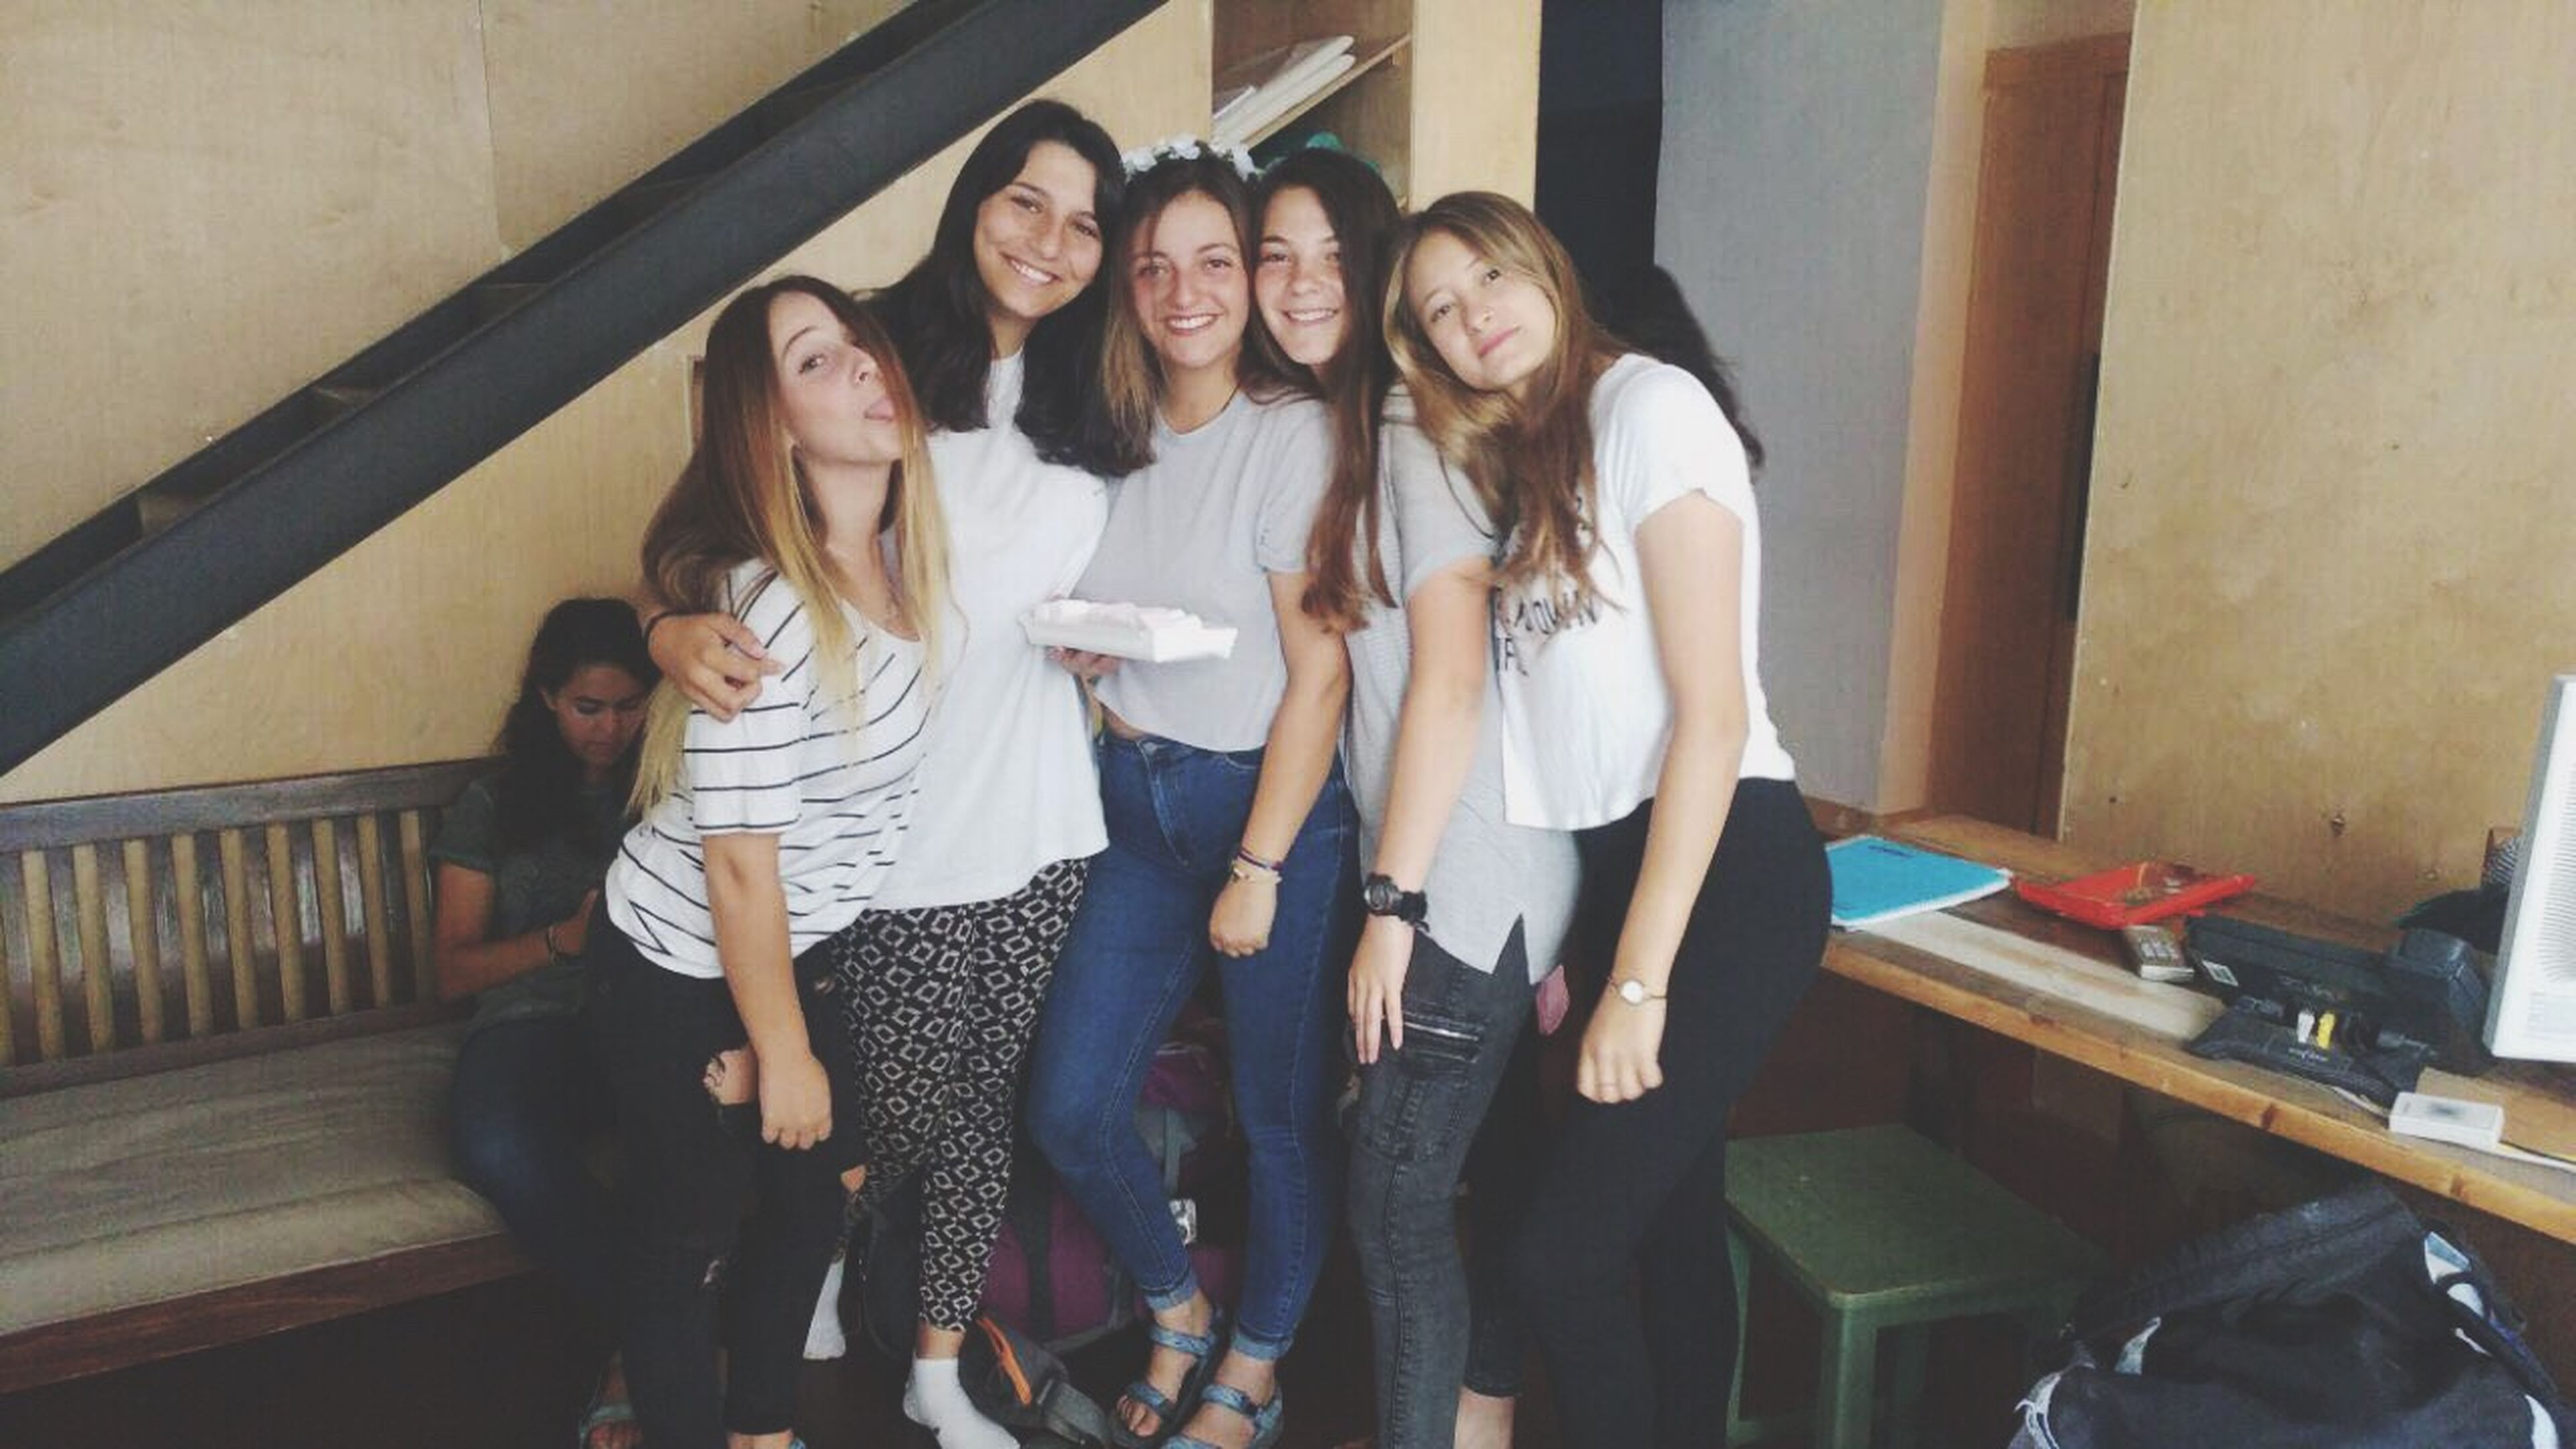 standing, young women, young adult, leisure activity, casual clothing, front view, smiling, togetherness, real people, full length, lifestyles, indoors, fashion, happiness, portrait, friendship, looking at camera, day, beautiful woman, bonding, wireless technology, technology